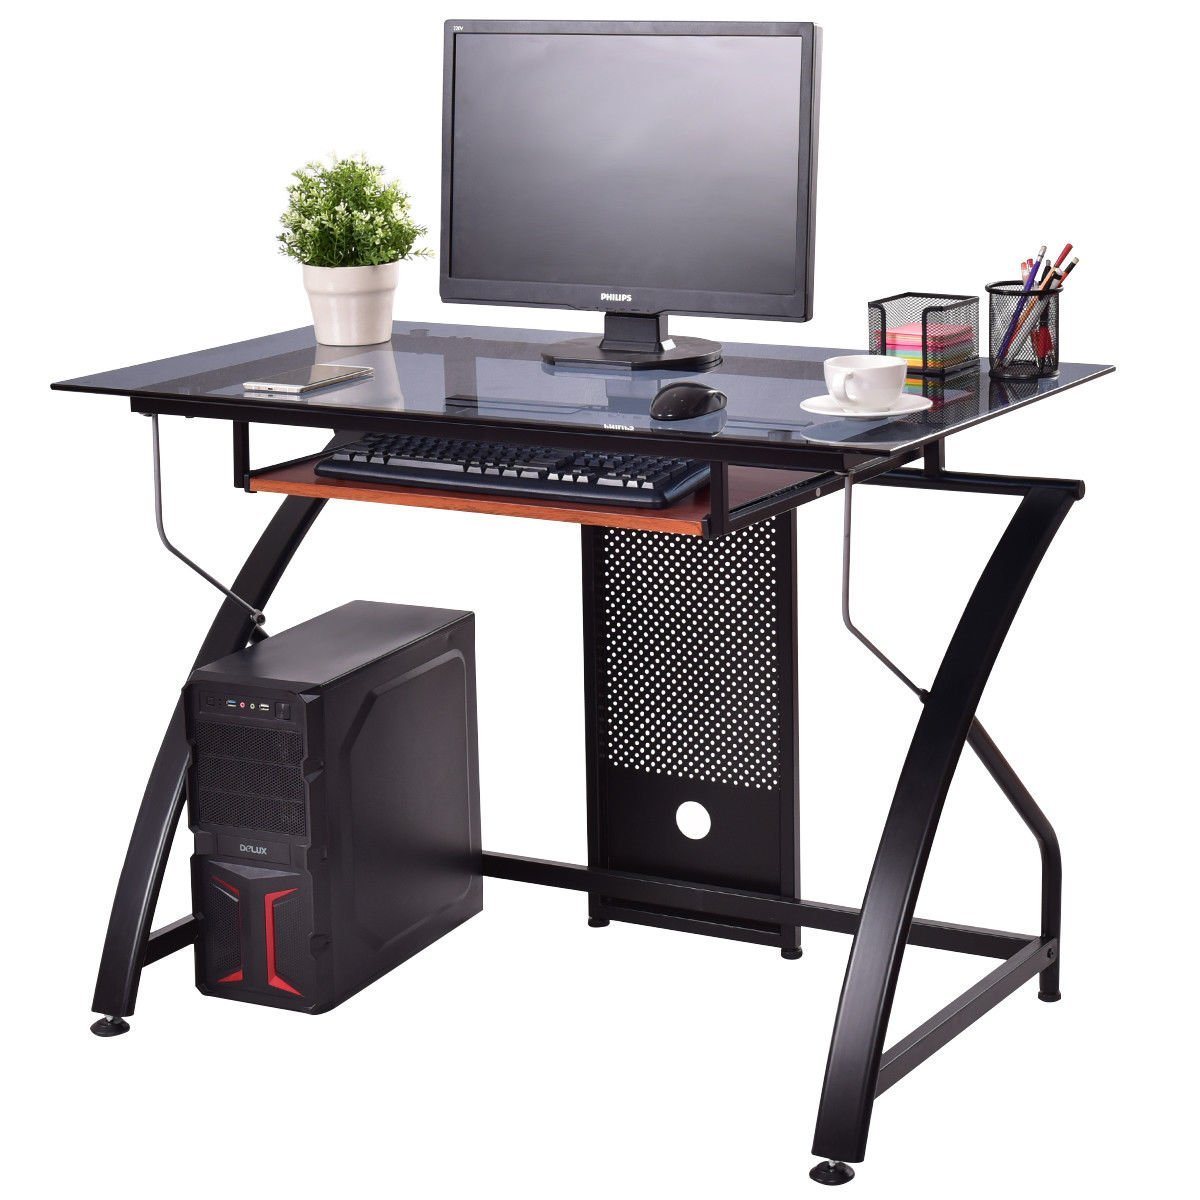 TANGKULA Computer Desk Writing Table Simple Home Office Computer Workstation with Pull-out Keyboard Tray, Tempered Glass Top & Iron Frame Student Writing Desk Home Furniture (Black With Keyboard Tray)